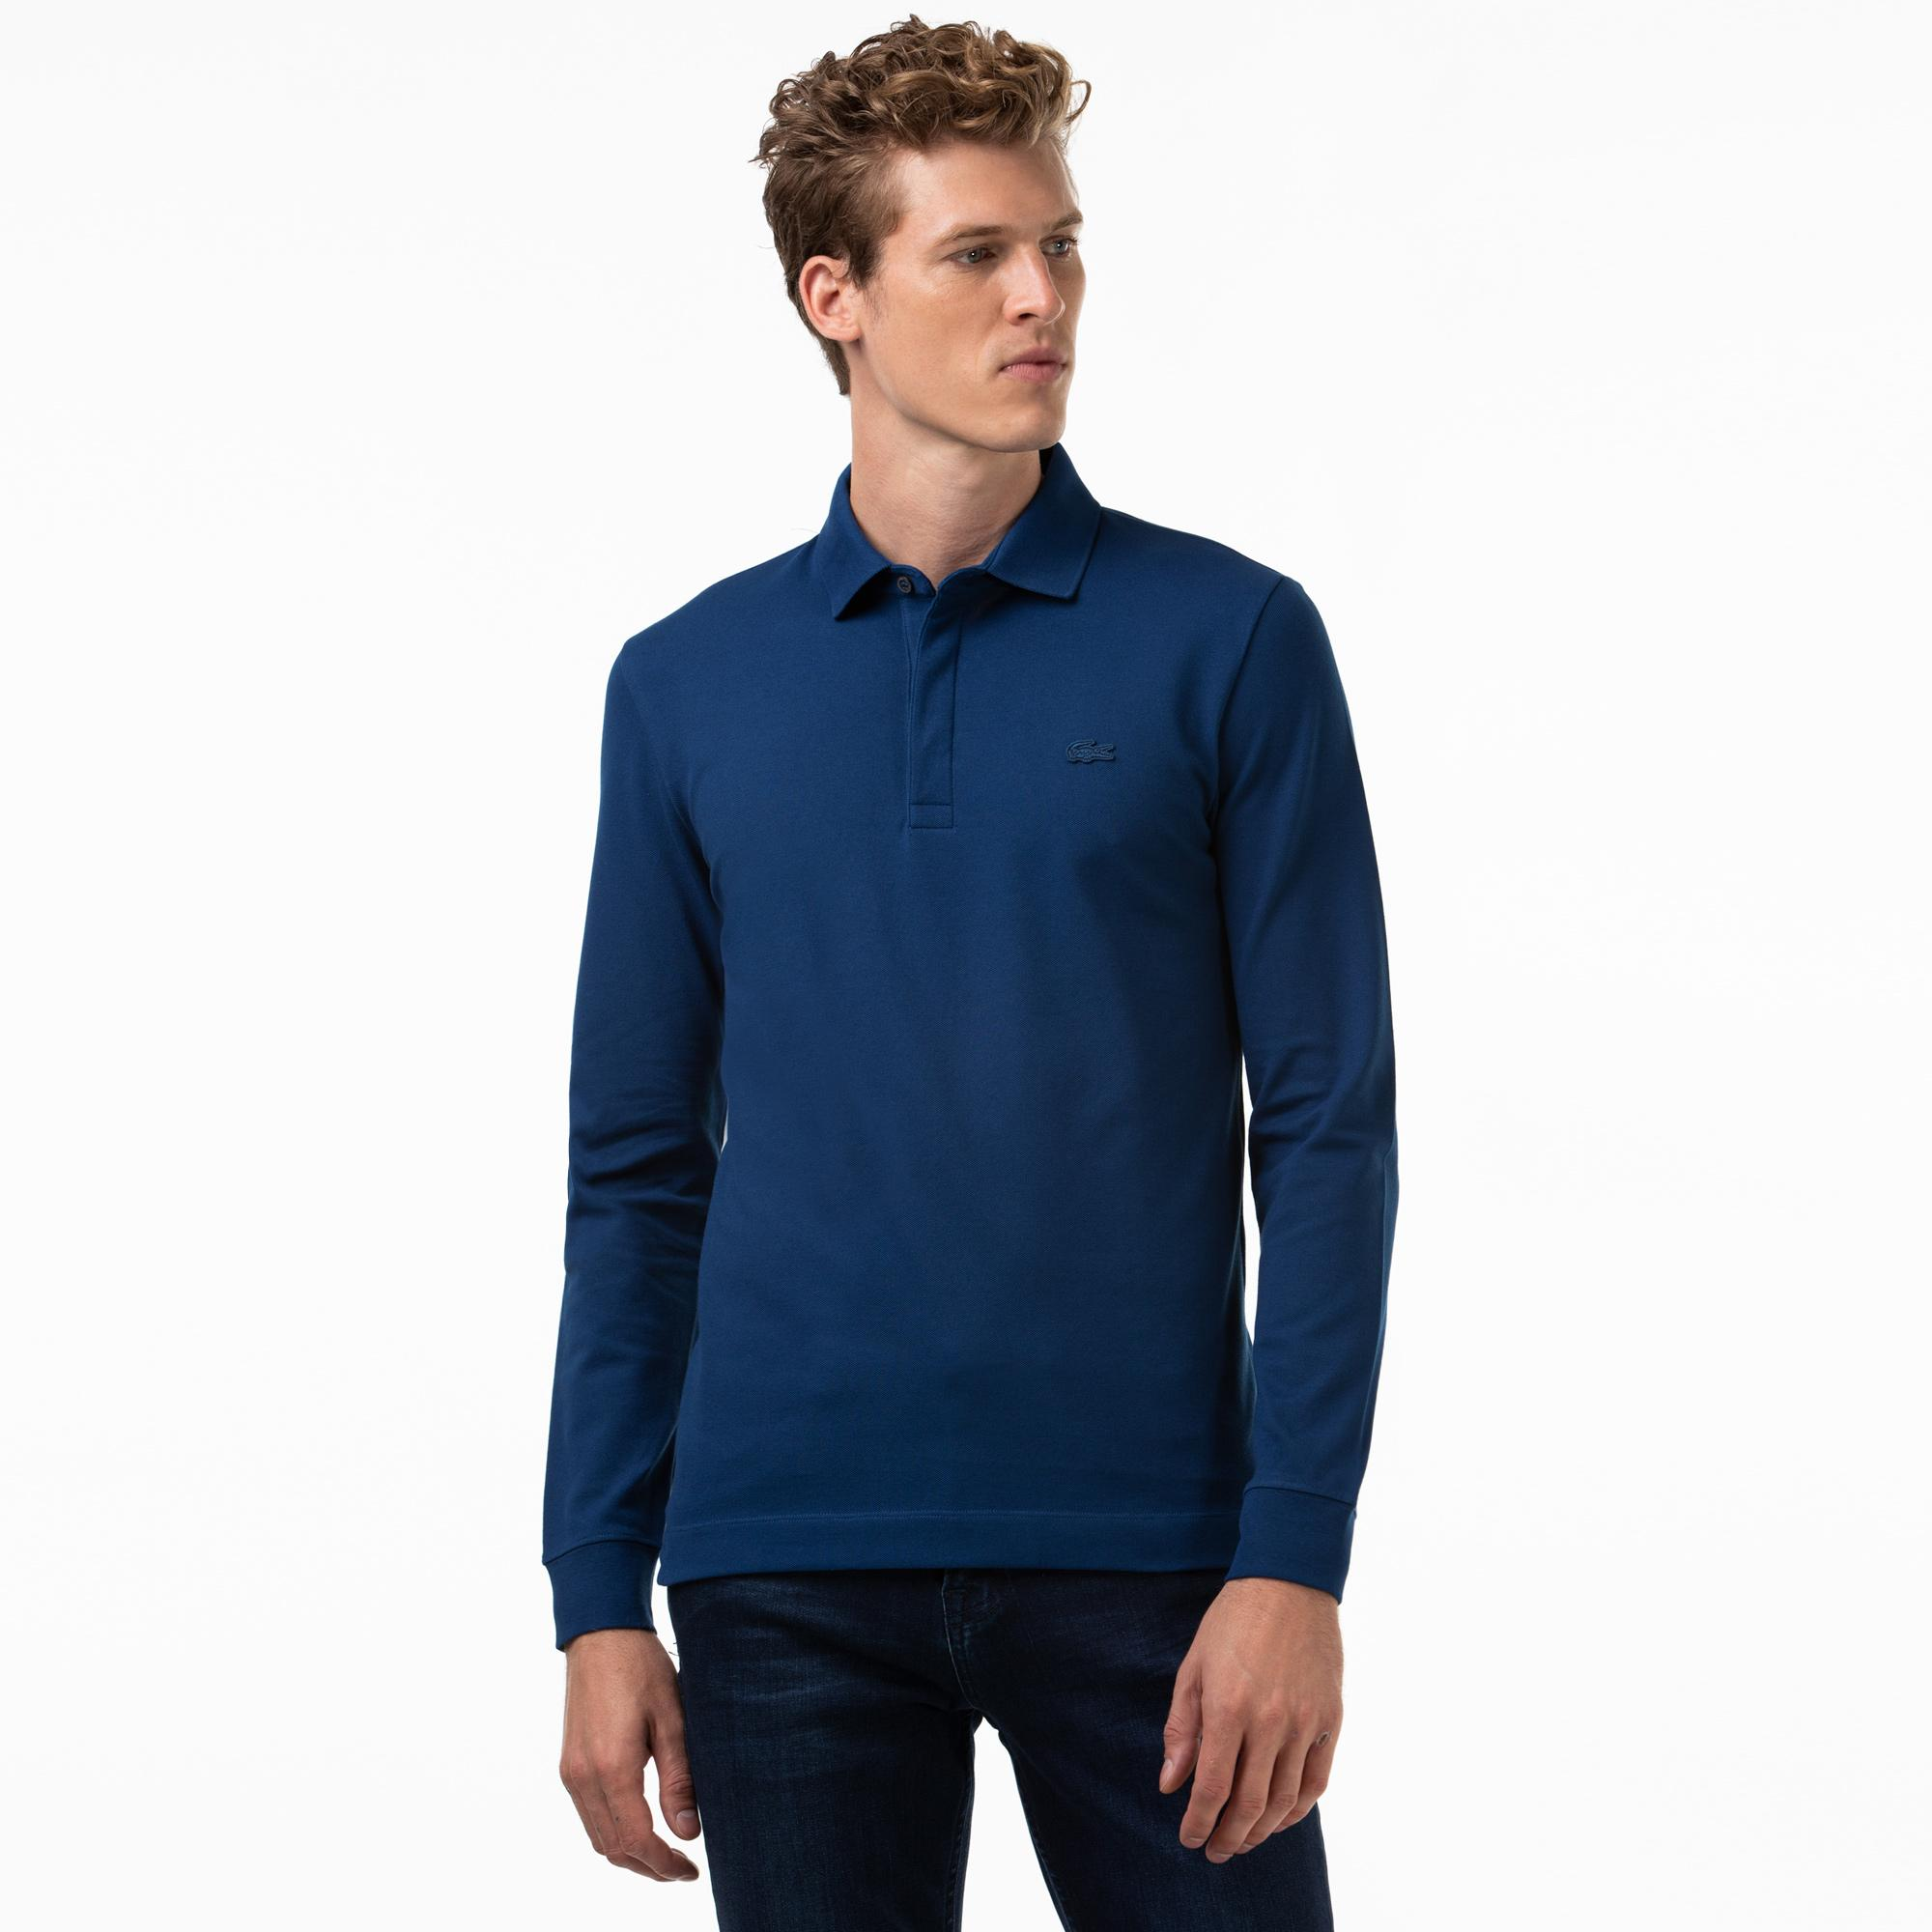 Lacoste Men's Regular Fit Polo Shirt